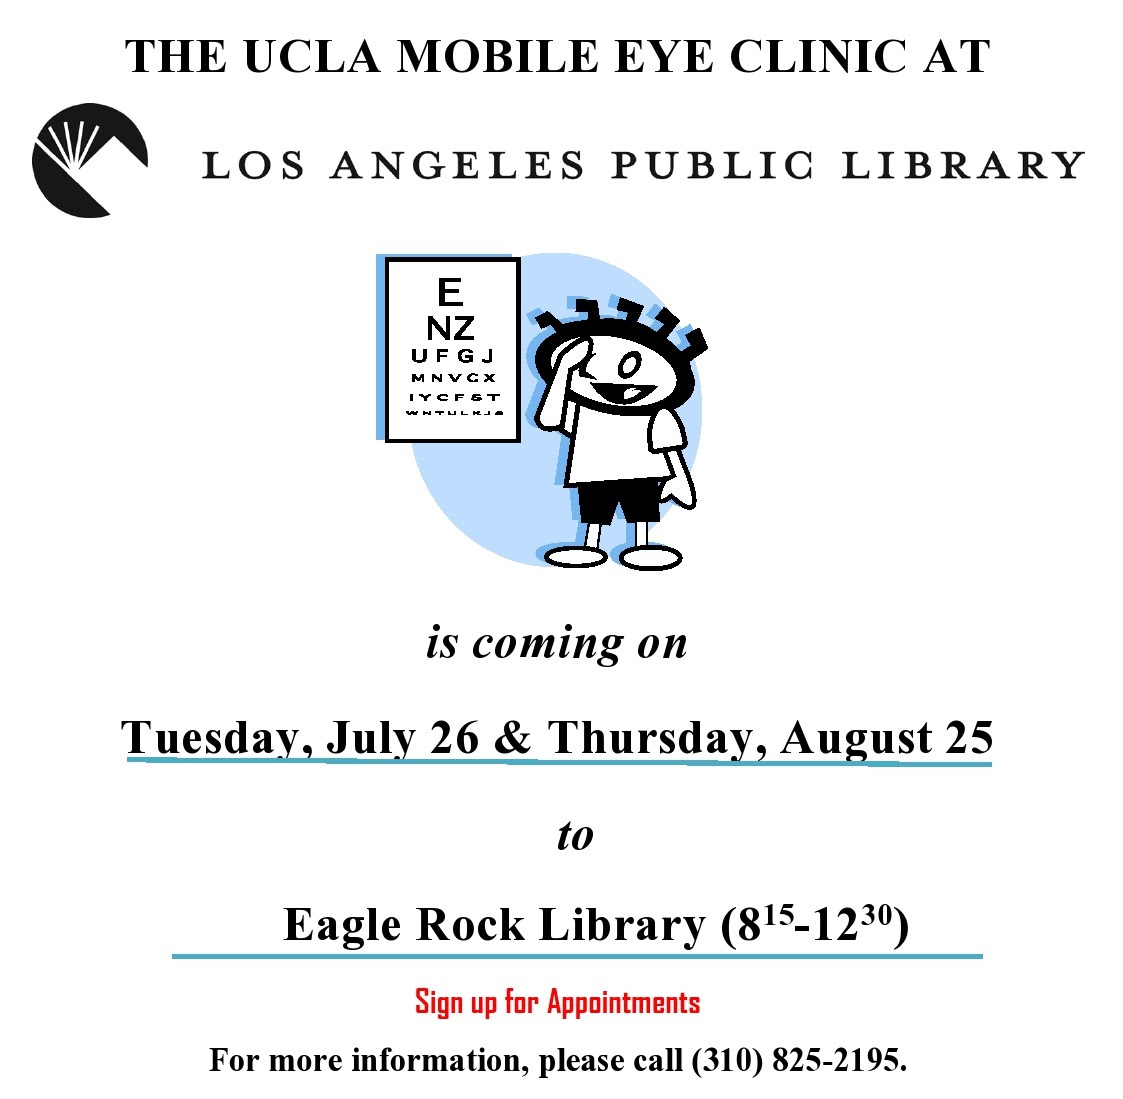 Free_Mobile_Eye_Clinic___Summer_Lunch_at_the_Eagle_Rock_Library.jpg